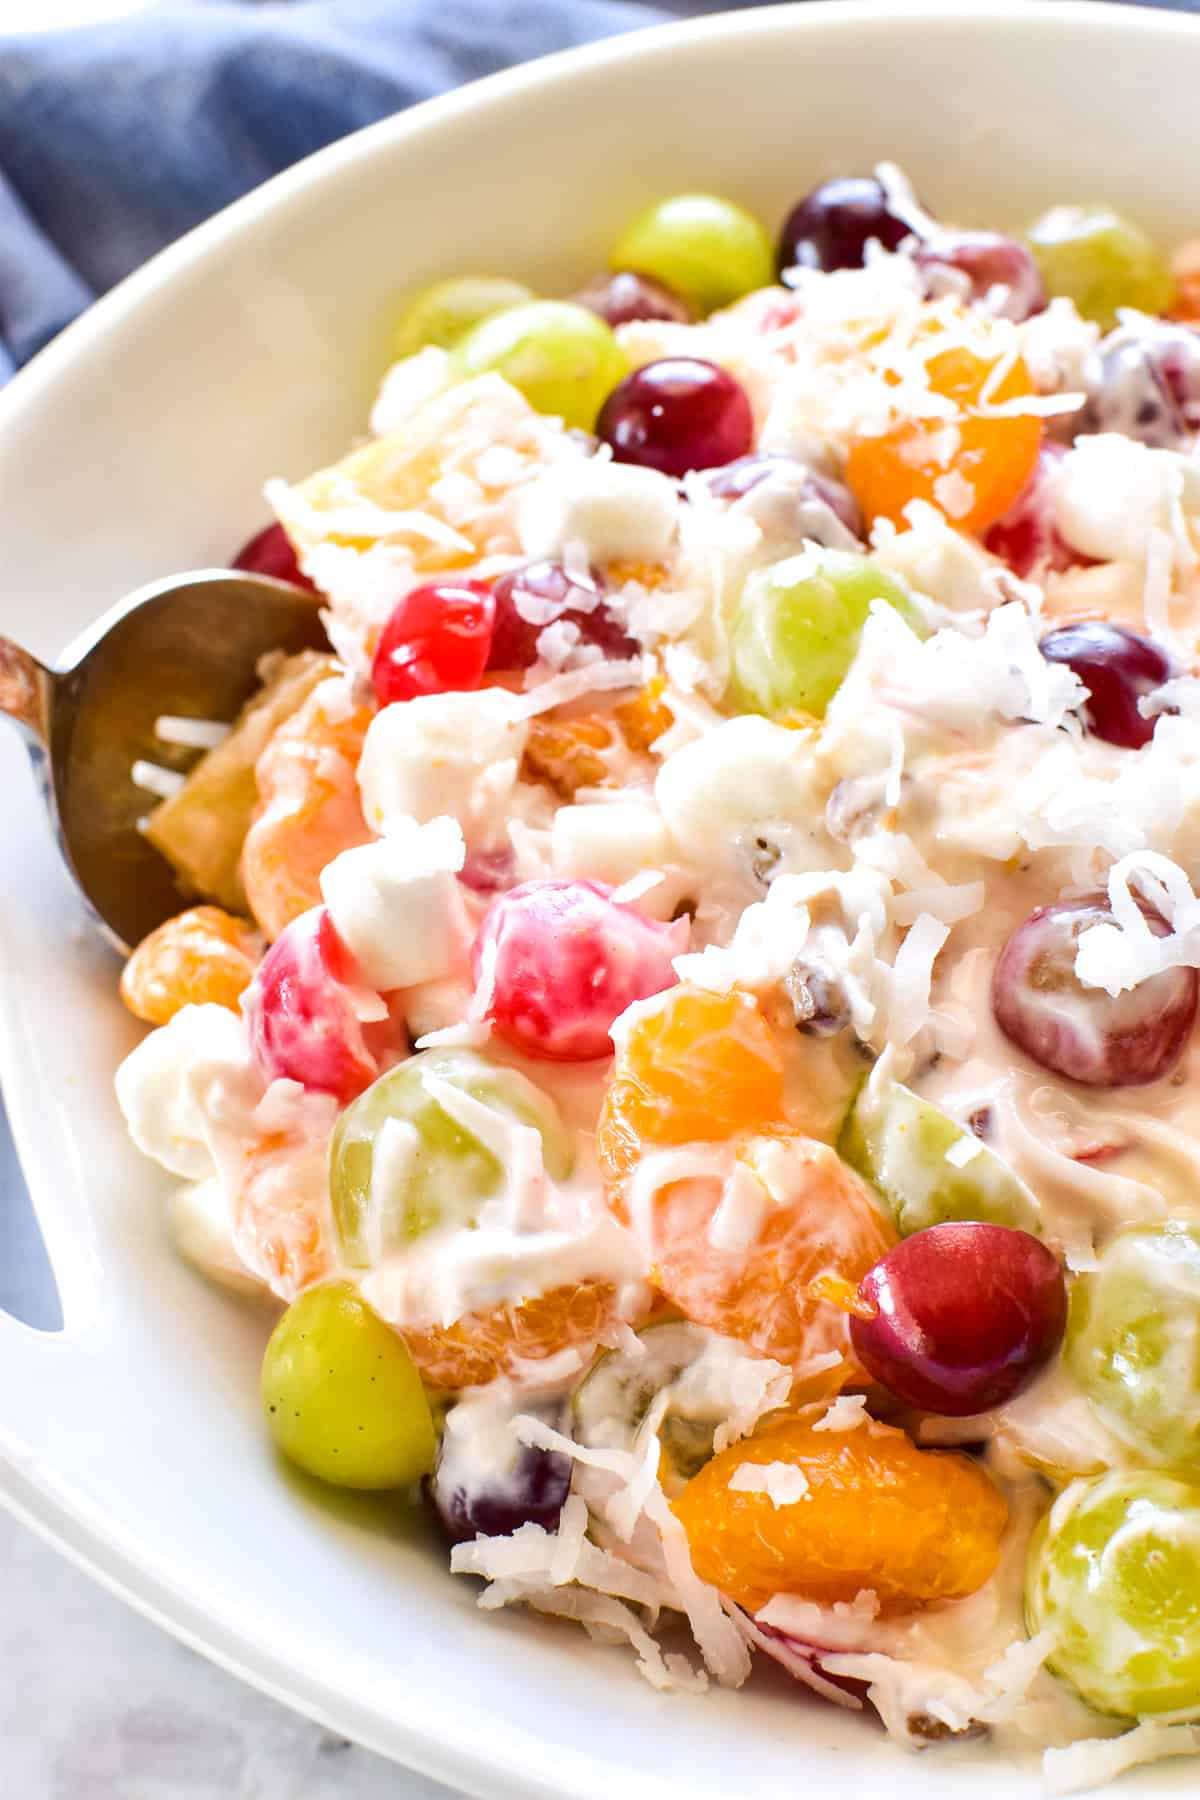 Ambrosia Salad in serving bowl with spoon